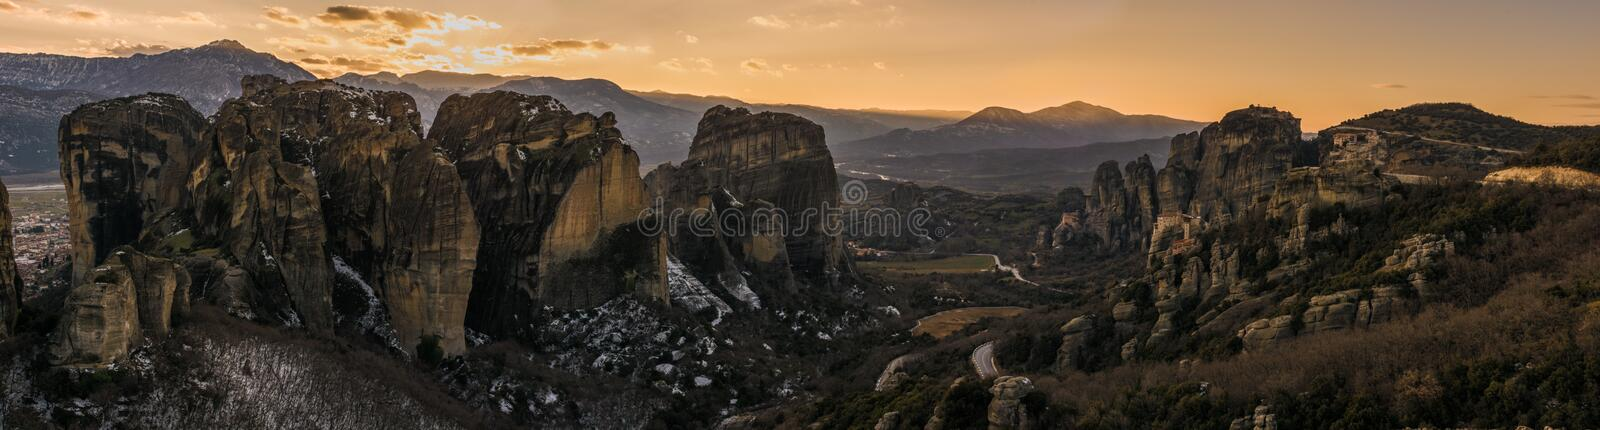 Metteora in greece royalty free stock photos